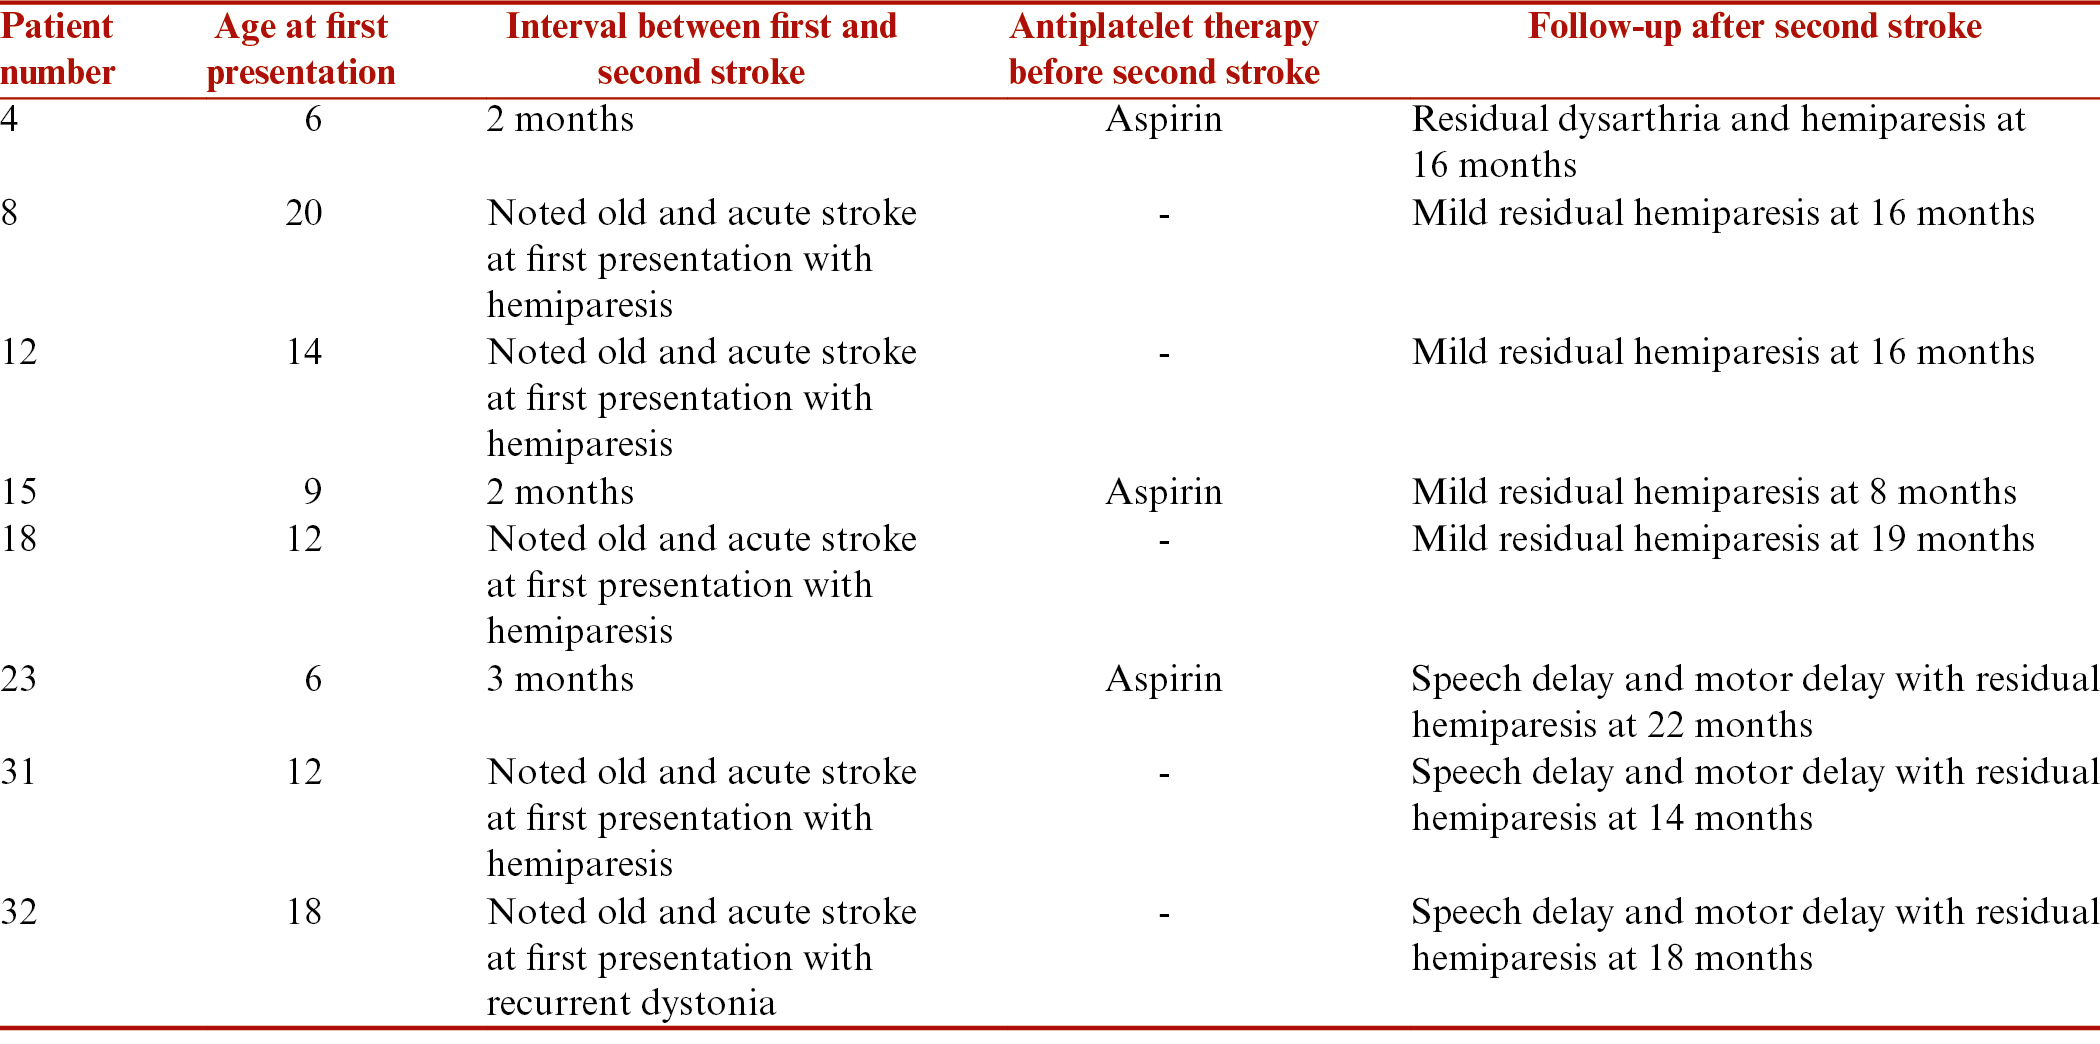 Mineralizing angiopathy with basal ganglia stroke after